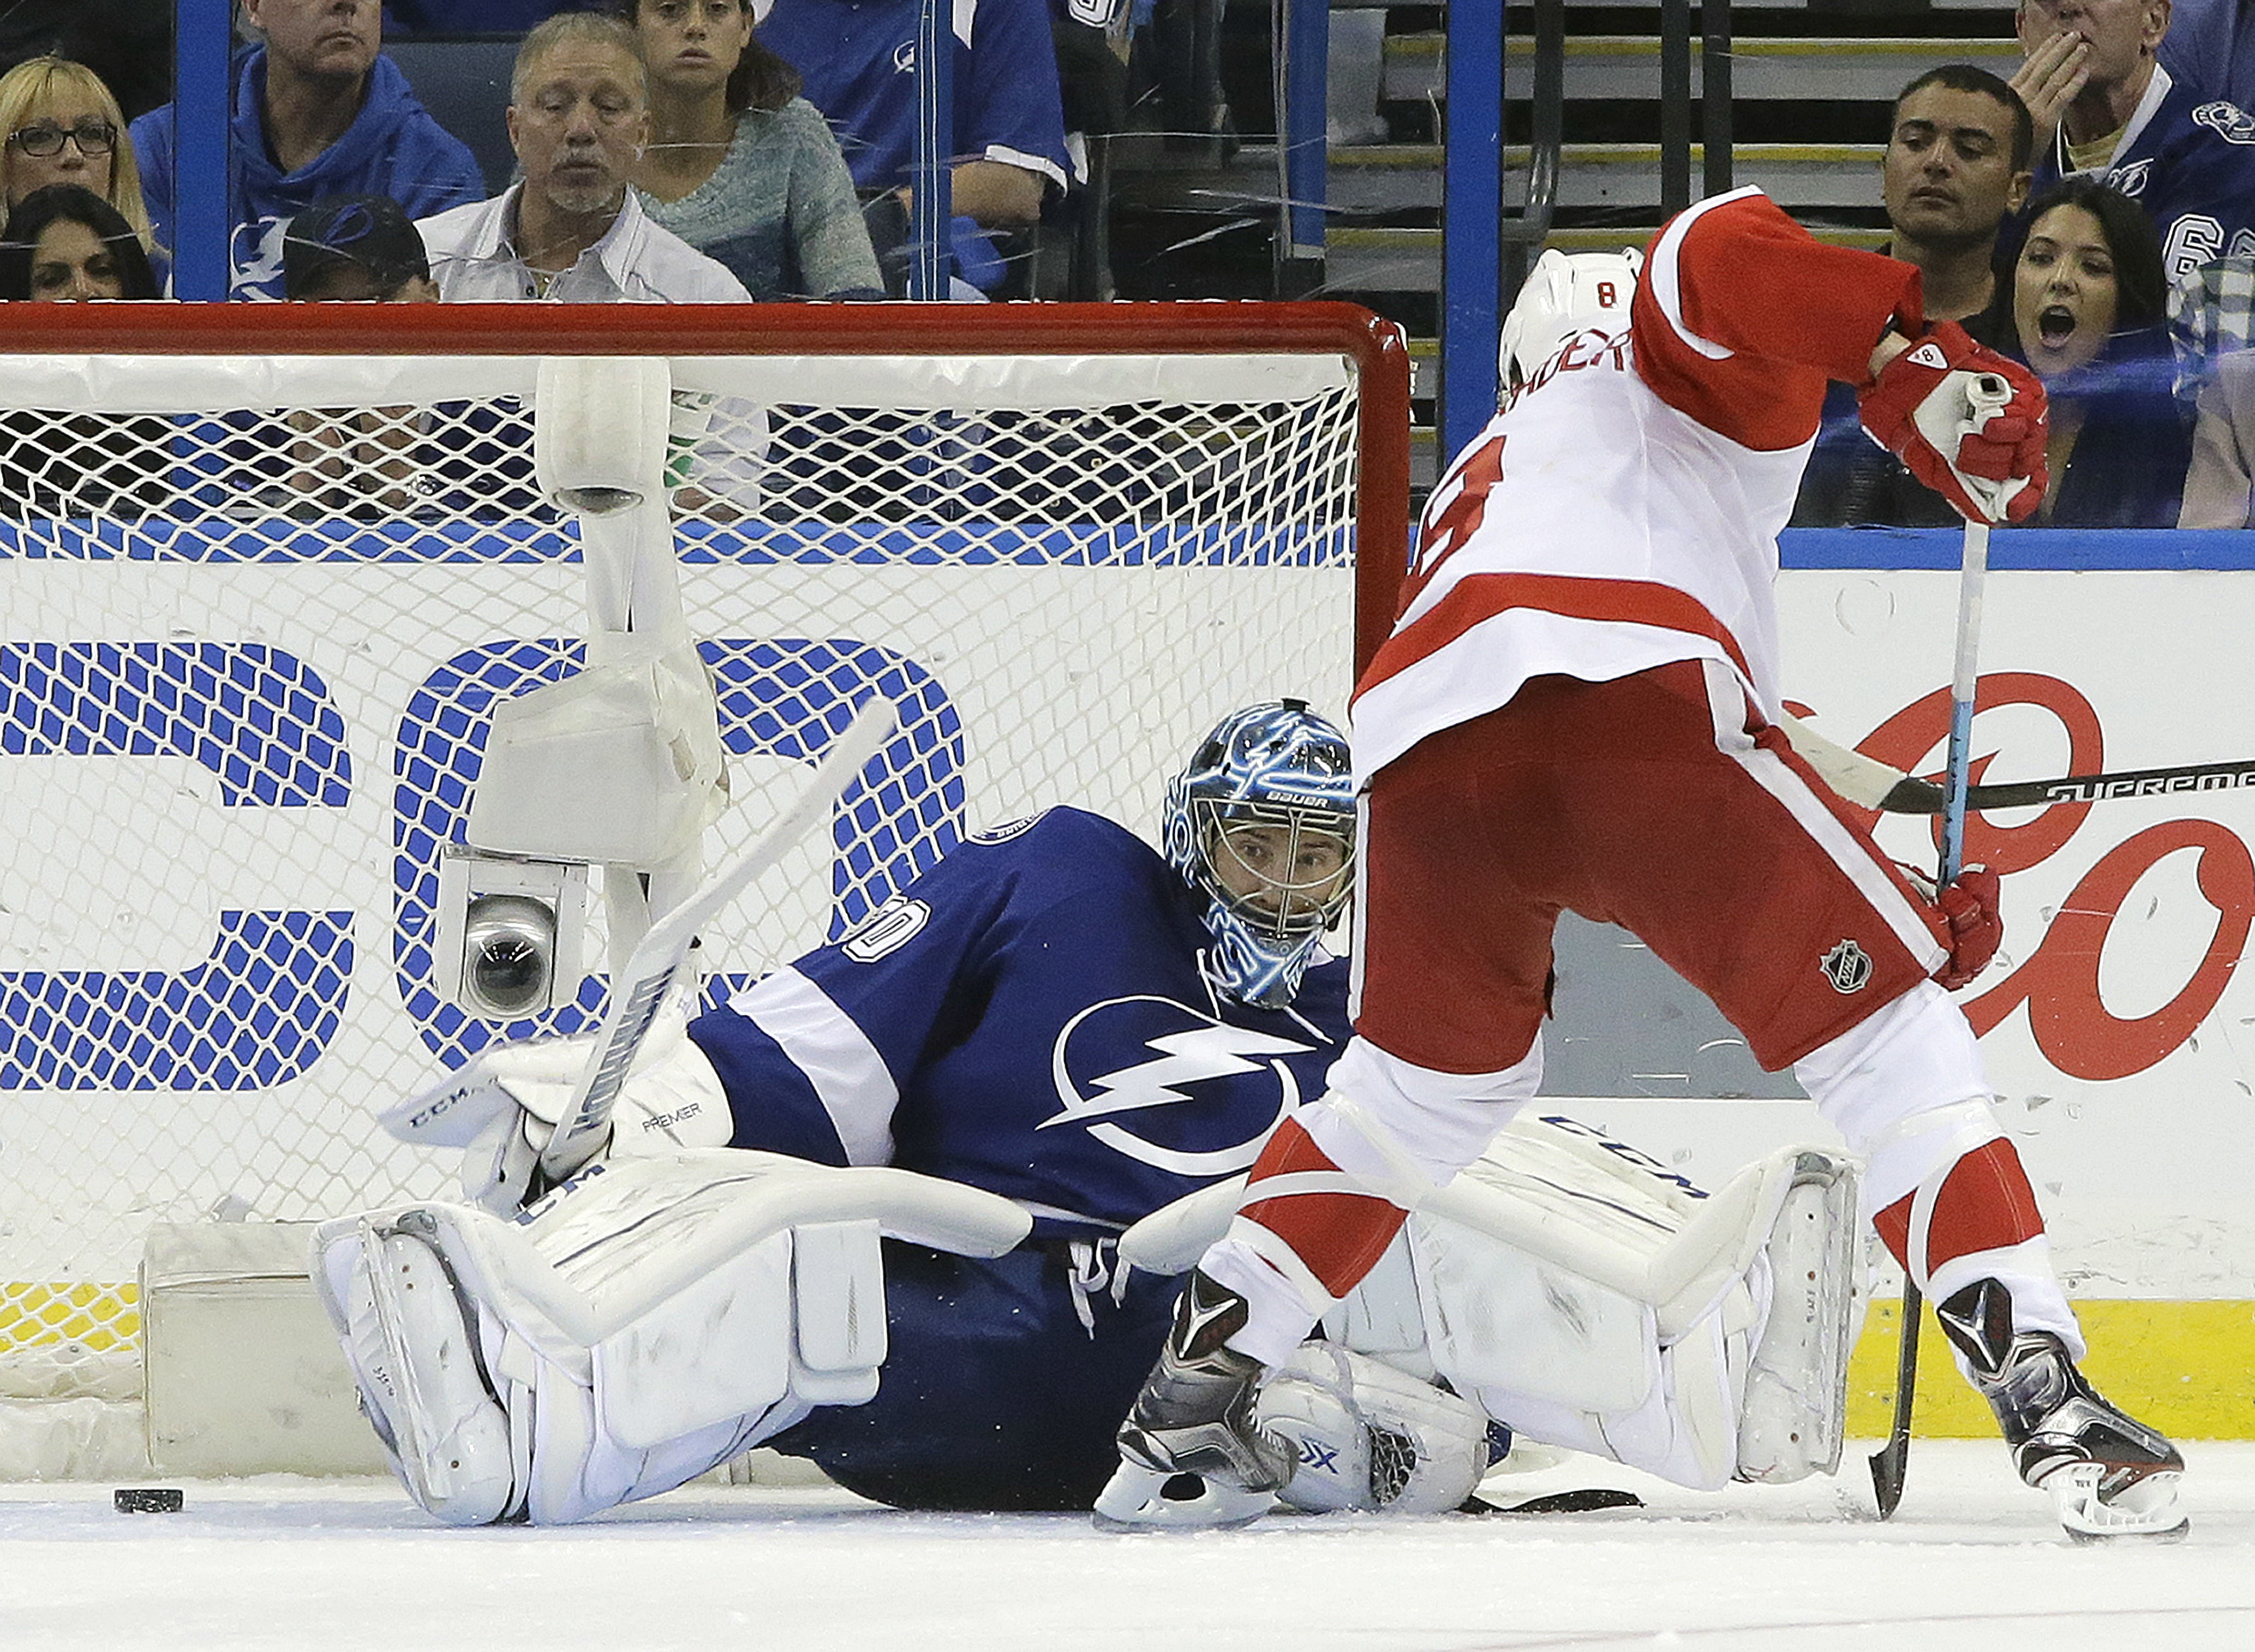 Tampa Bay Lightning goalie Ben Bishop (30) makes a save on a shot by Detroit Red Wings left wing Justin Abdelkader (8) during the second period of Game 5 in a first-round NHL hockey Stanley Cup playoff series Thursday, April 21, 2016, in Tampa, Fla. (AP P